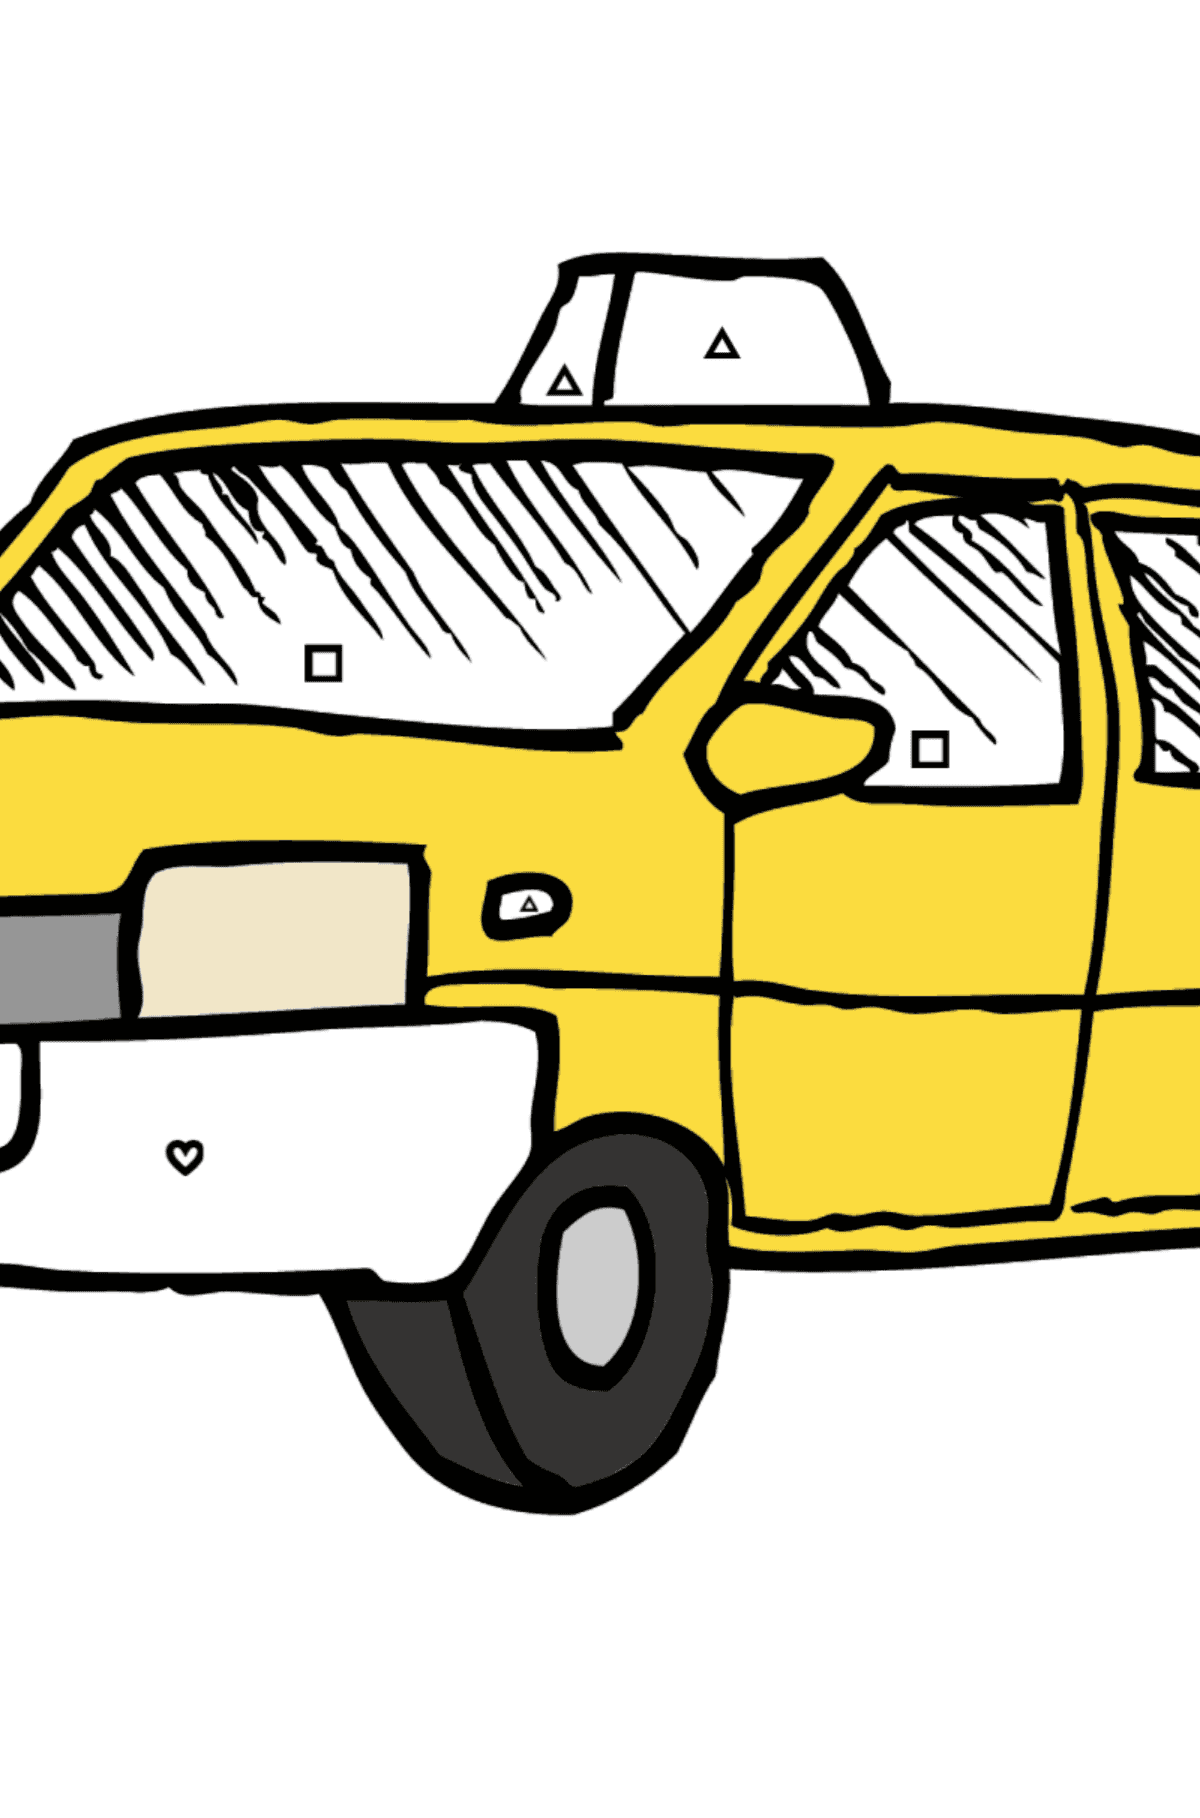 Coloring Page - A Yellow Taxi - Coloring by Geometric Shapes for Kids